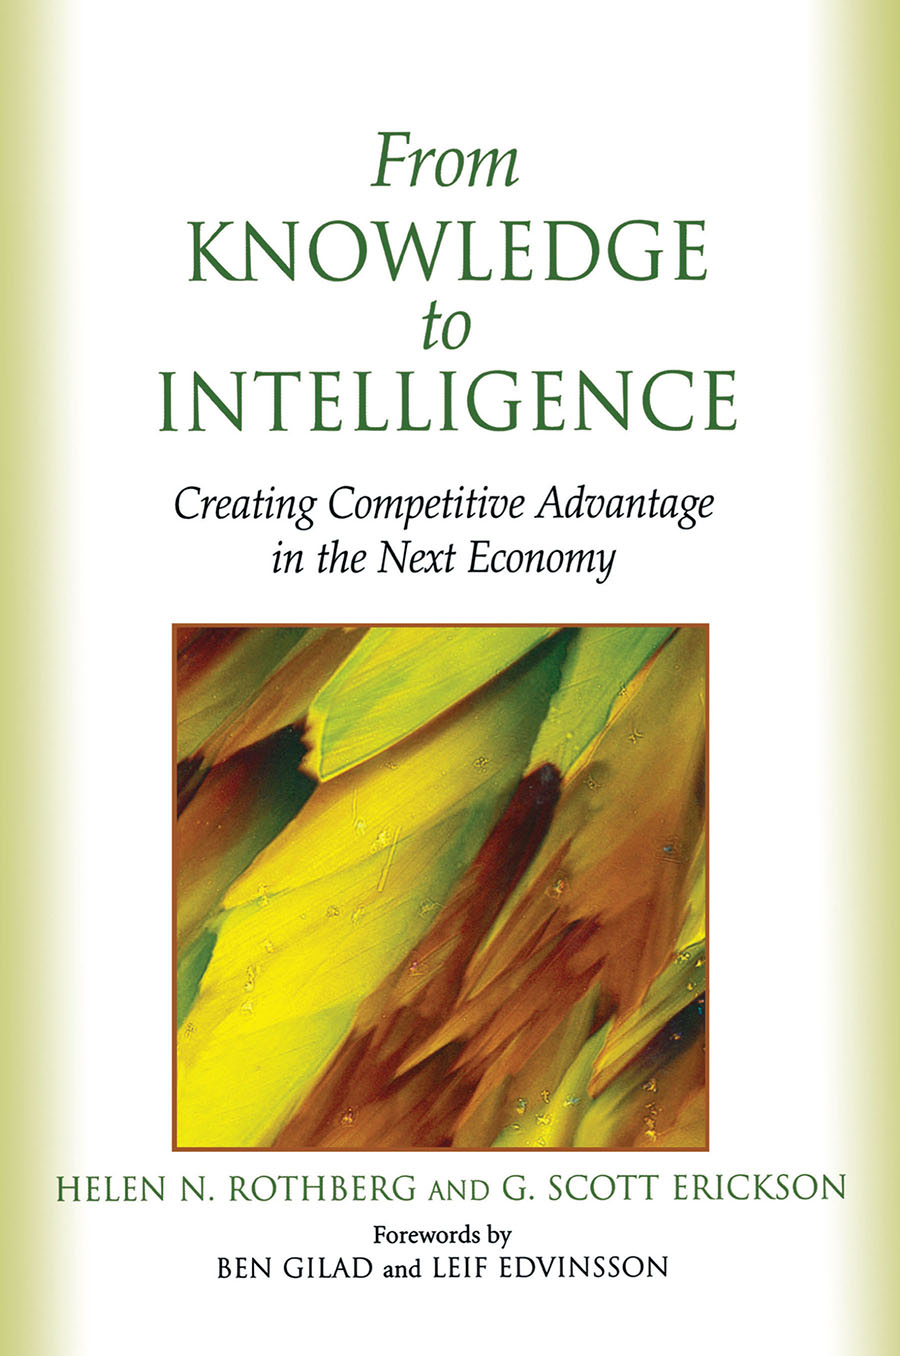 Download Ebook From Knowledge to Intelligence by Helen Rothberg Pdf